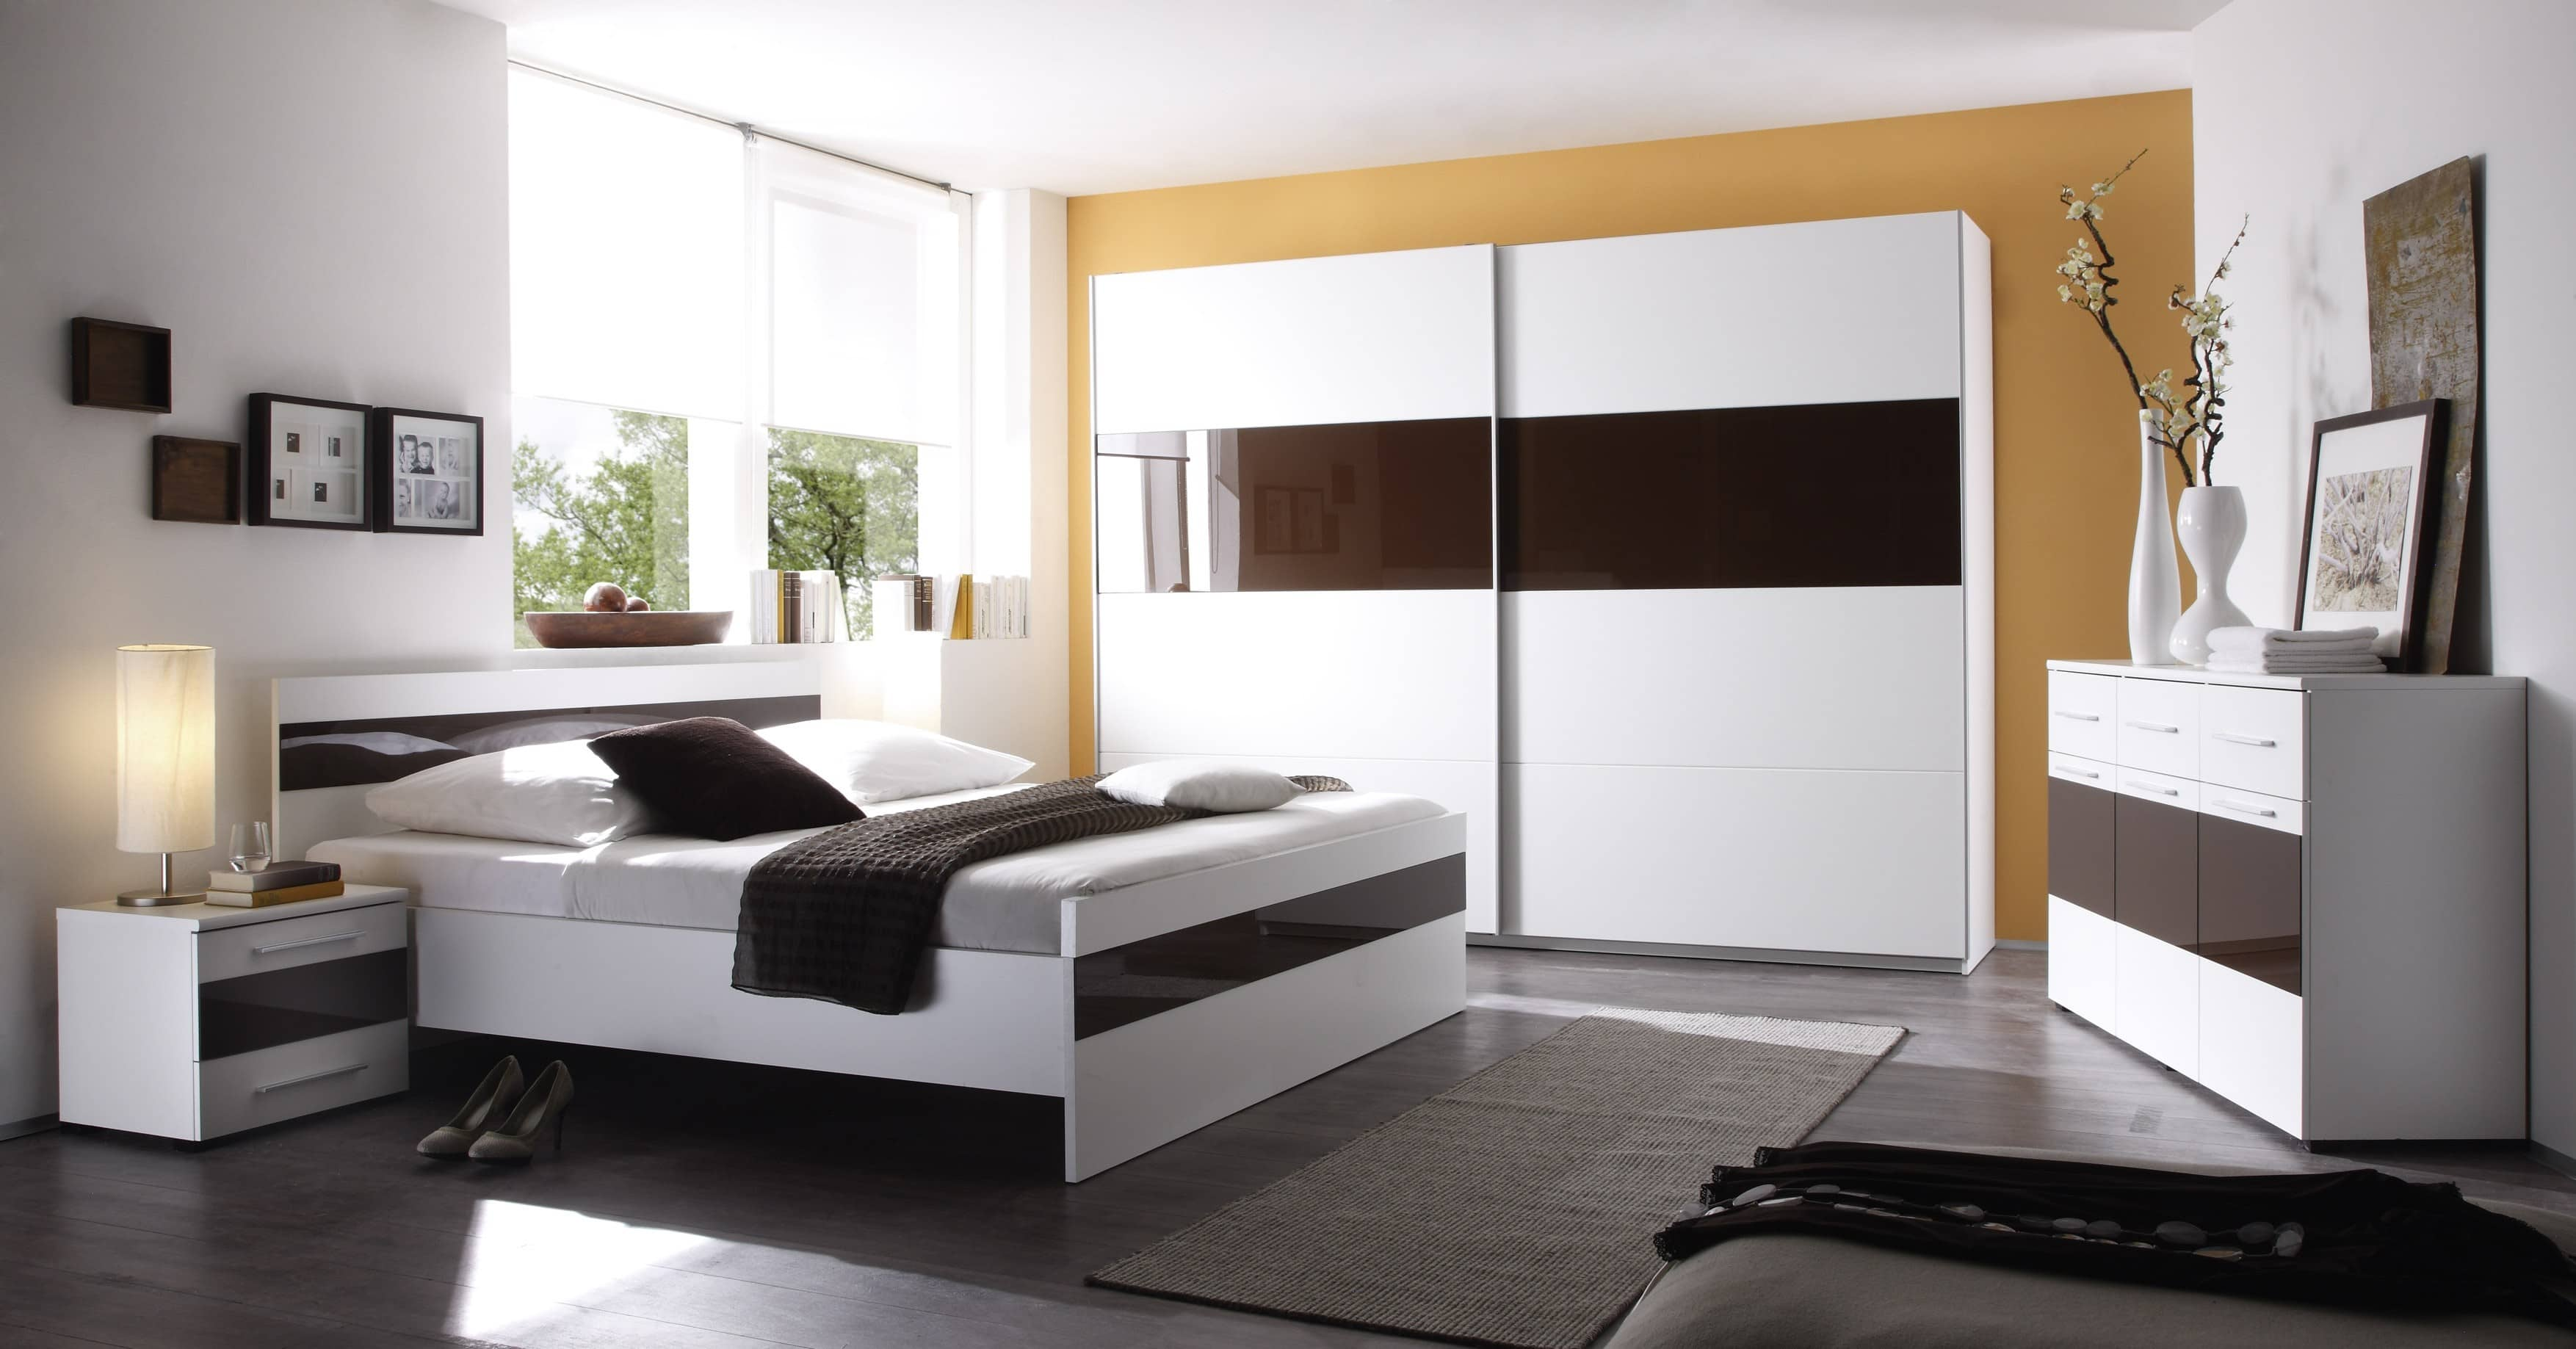 Miroir de chambre conforama solutions pour la d coration for Decoration maison conforama